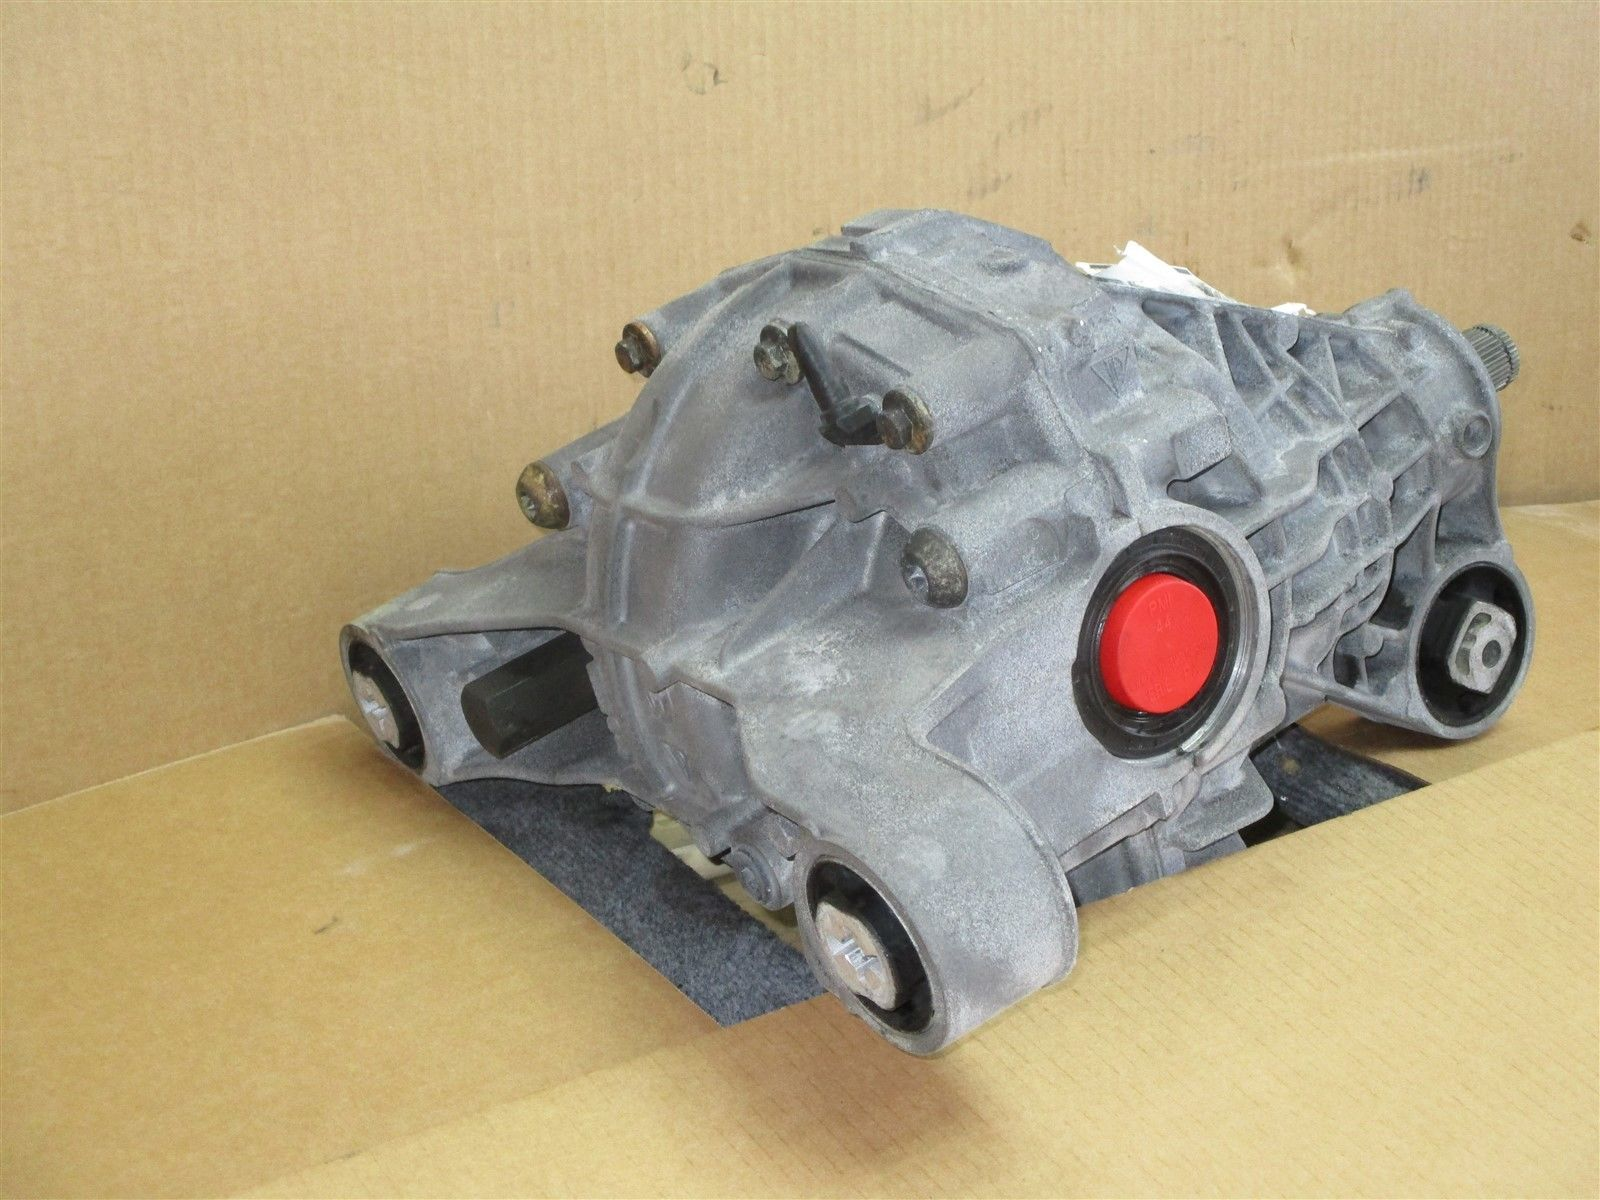 17 Cayenne Turbo AWD Porsche 958 REAR DIFFERENTIAL 0BN525018F 9,356